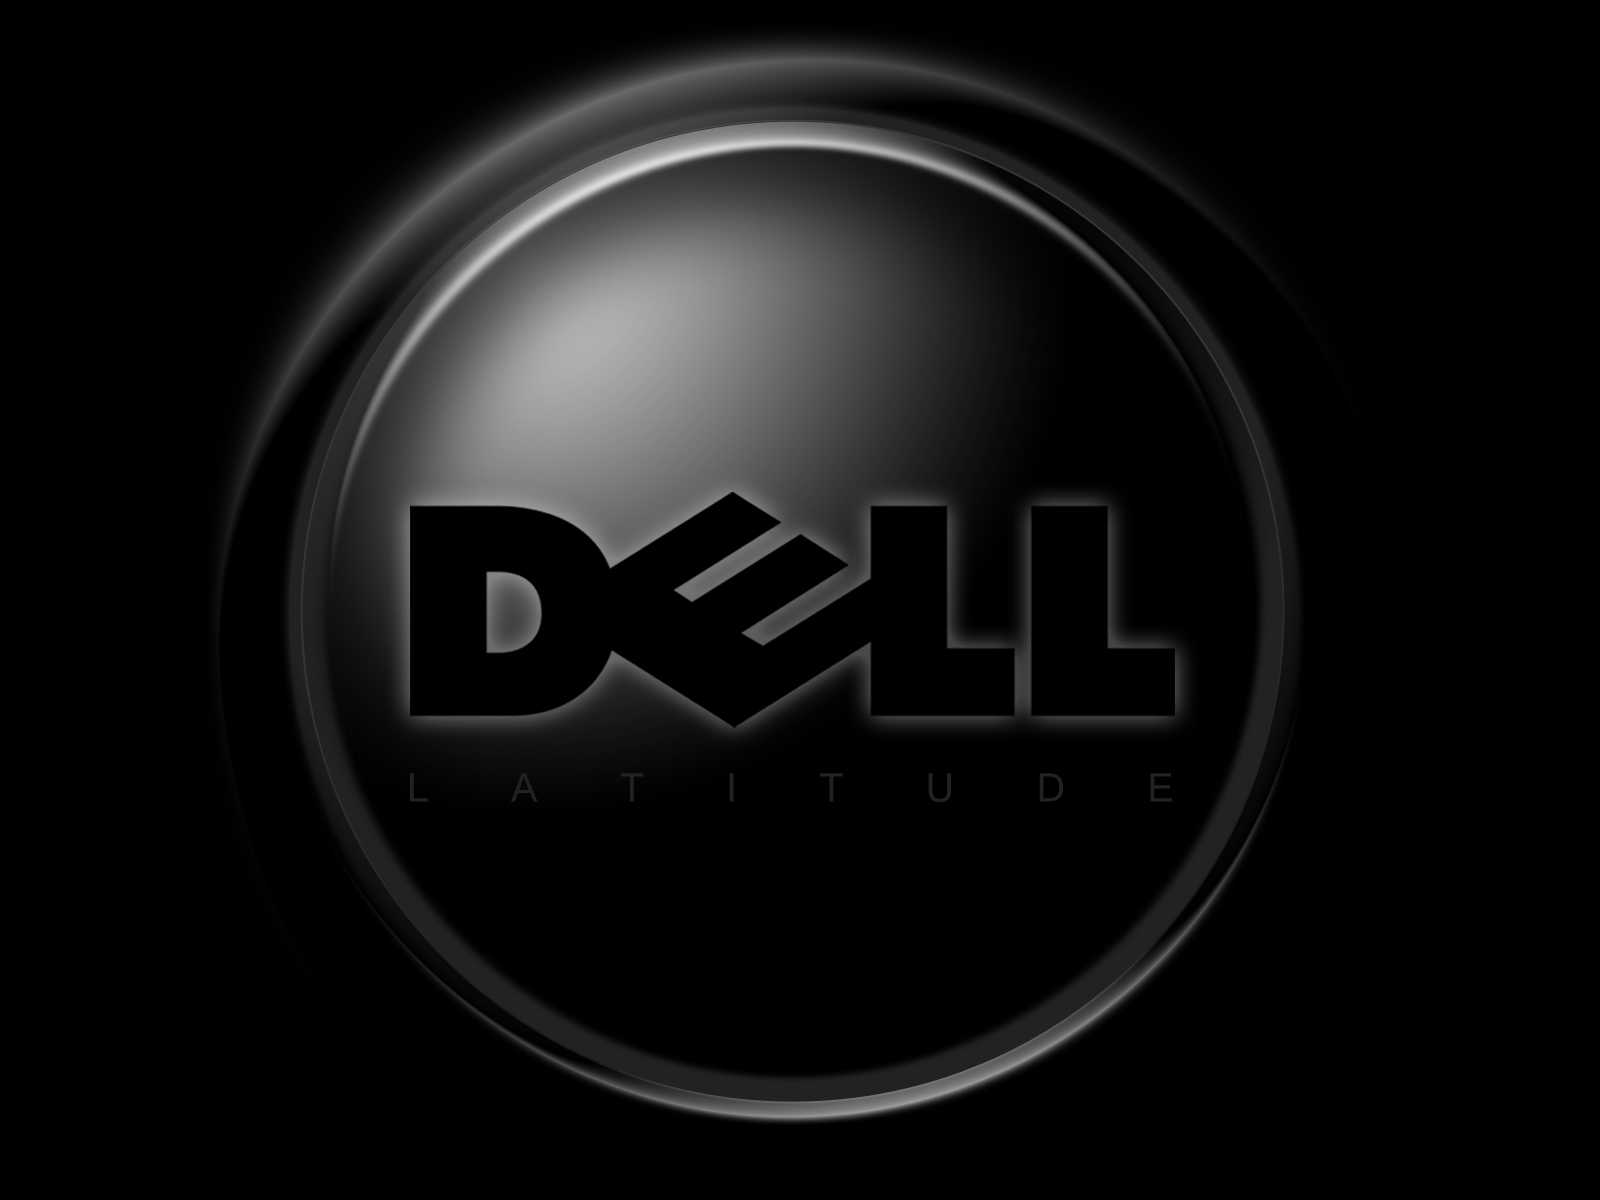 Dell Wallpaper | Wallpapers